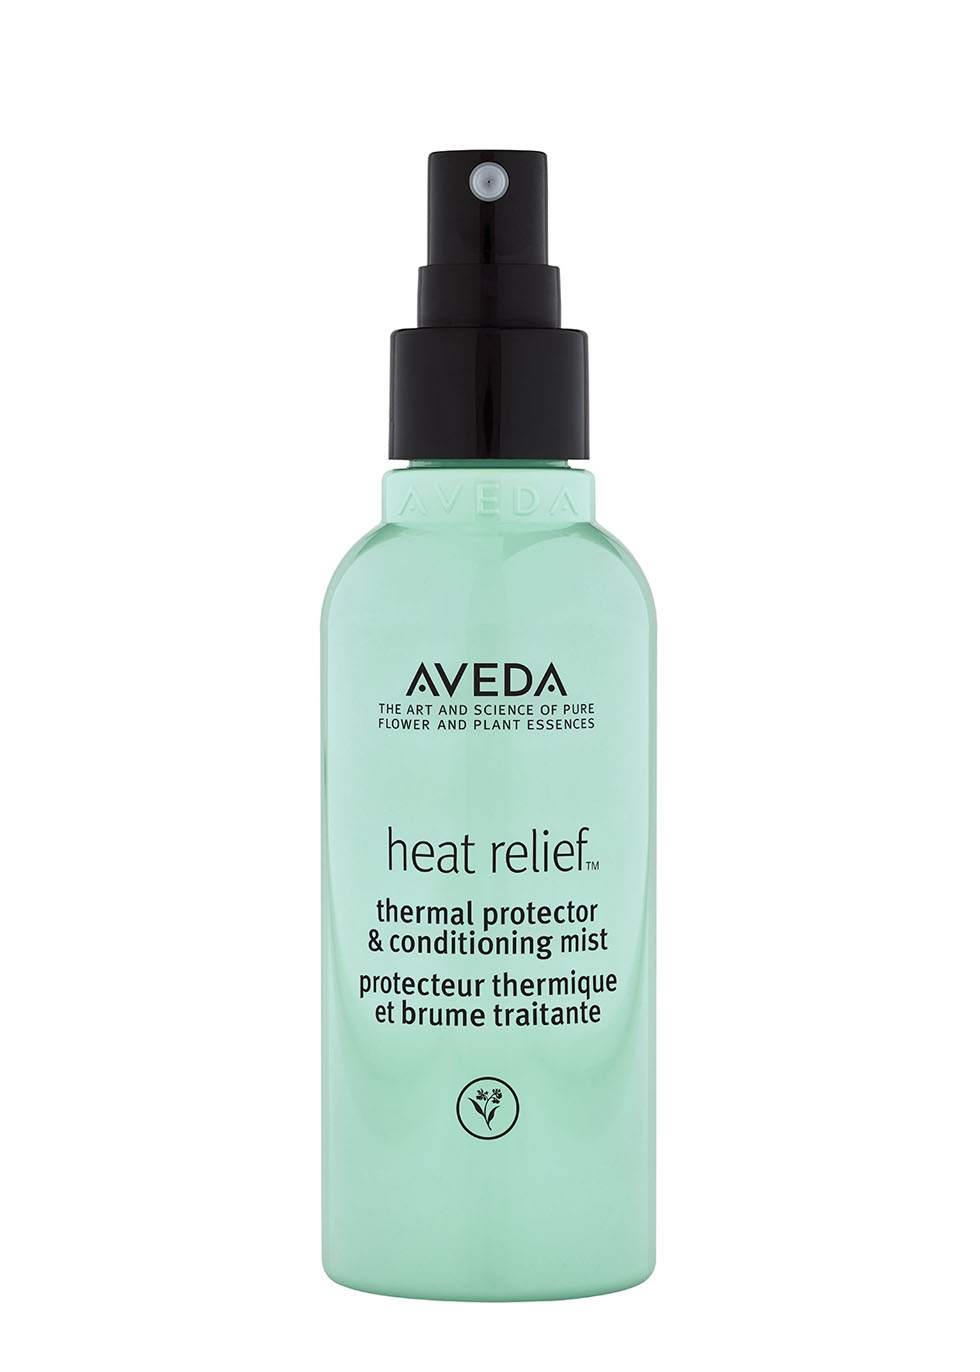 Heat Relief Thermal Protector & Conditioning Mist 100ml